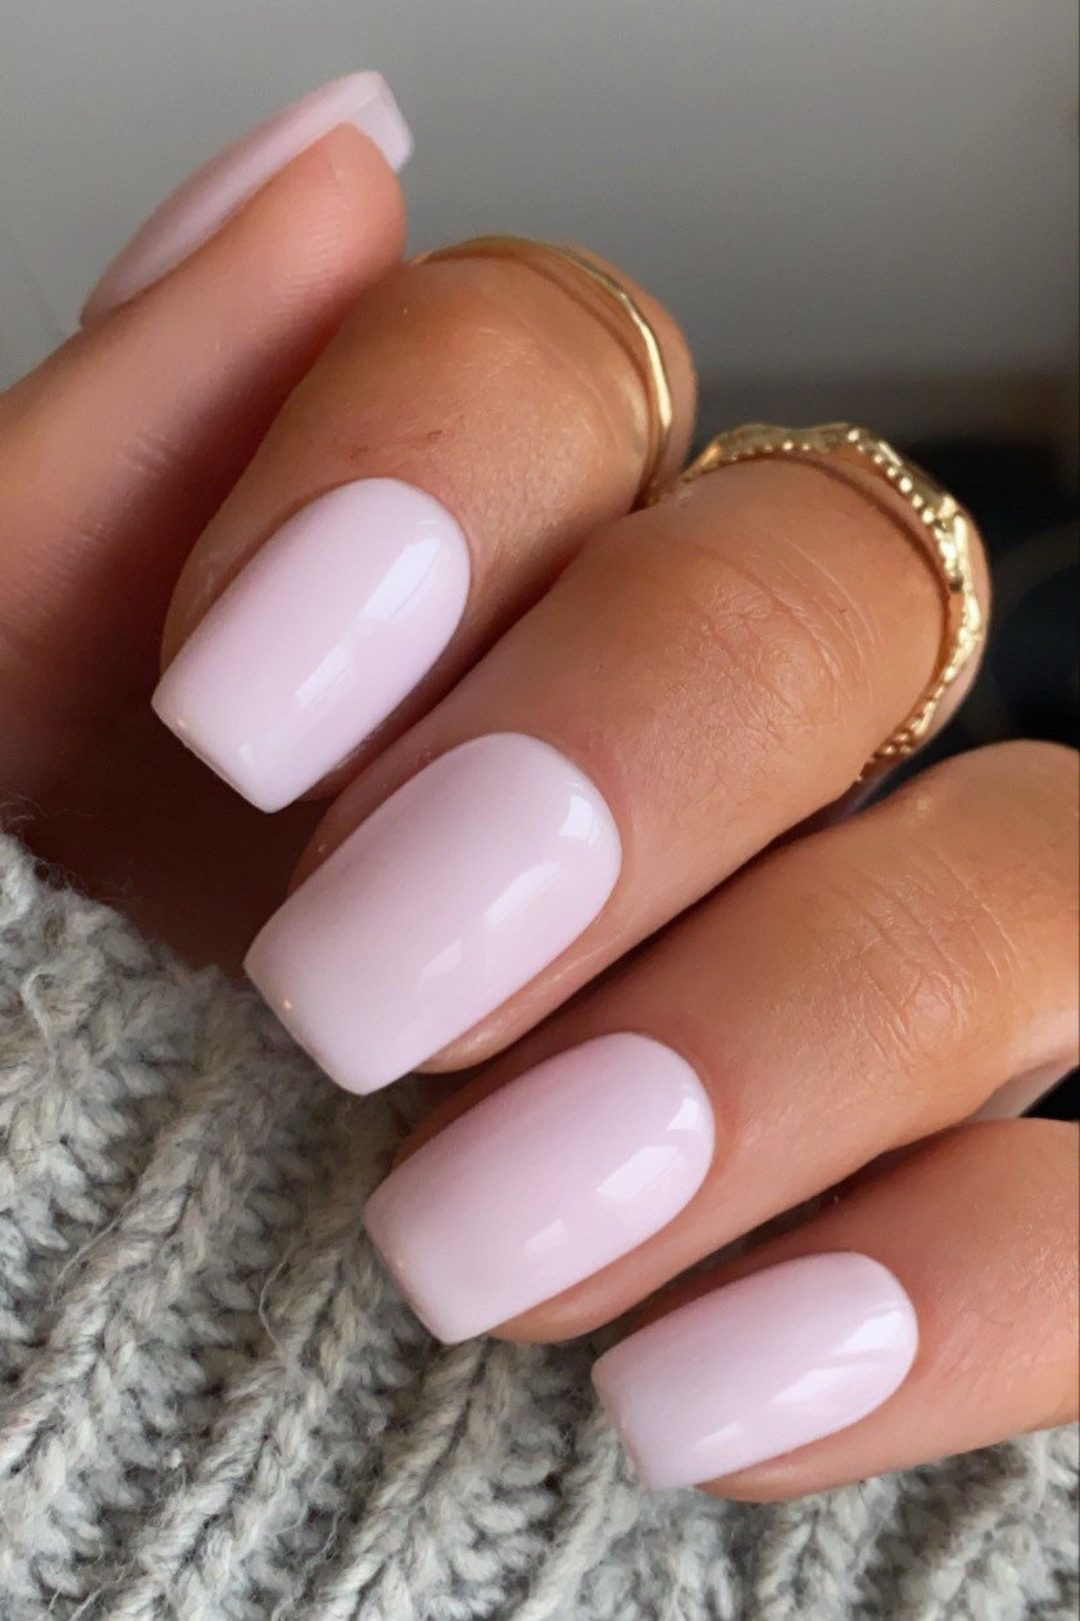 30 Charming Gel Nail Designs That You'll Want To Try ASAP